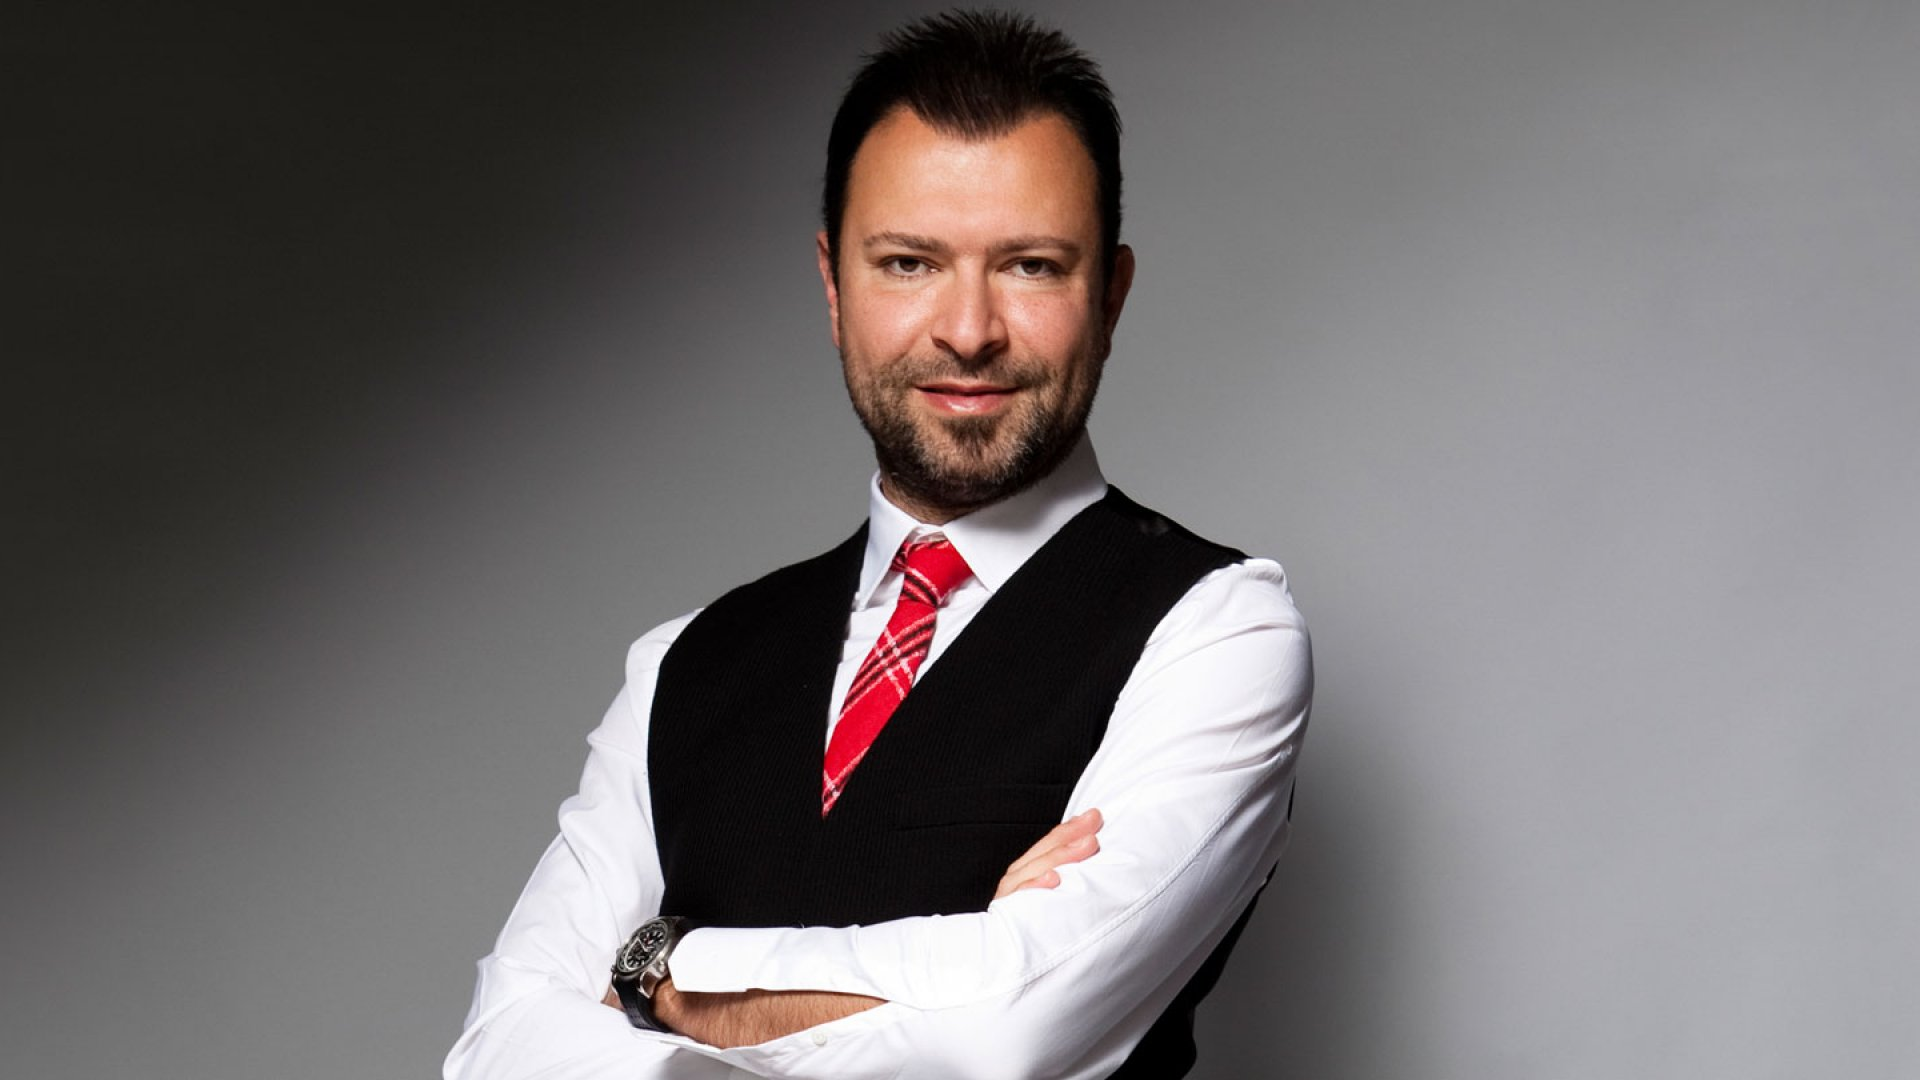 Khajak Keledjian, co-founder of Intermix